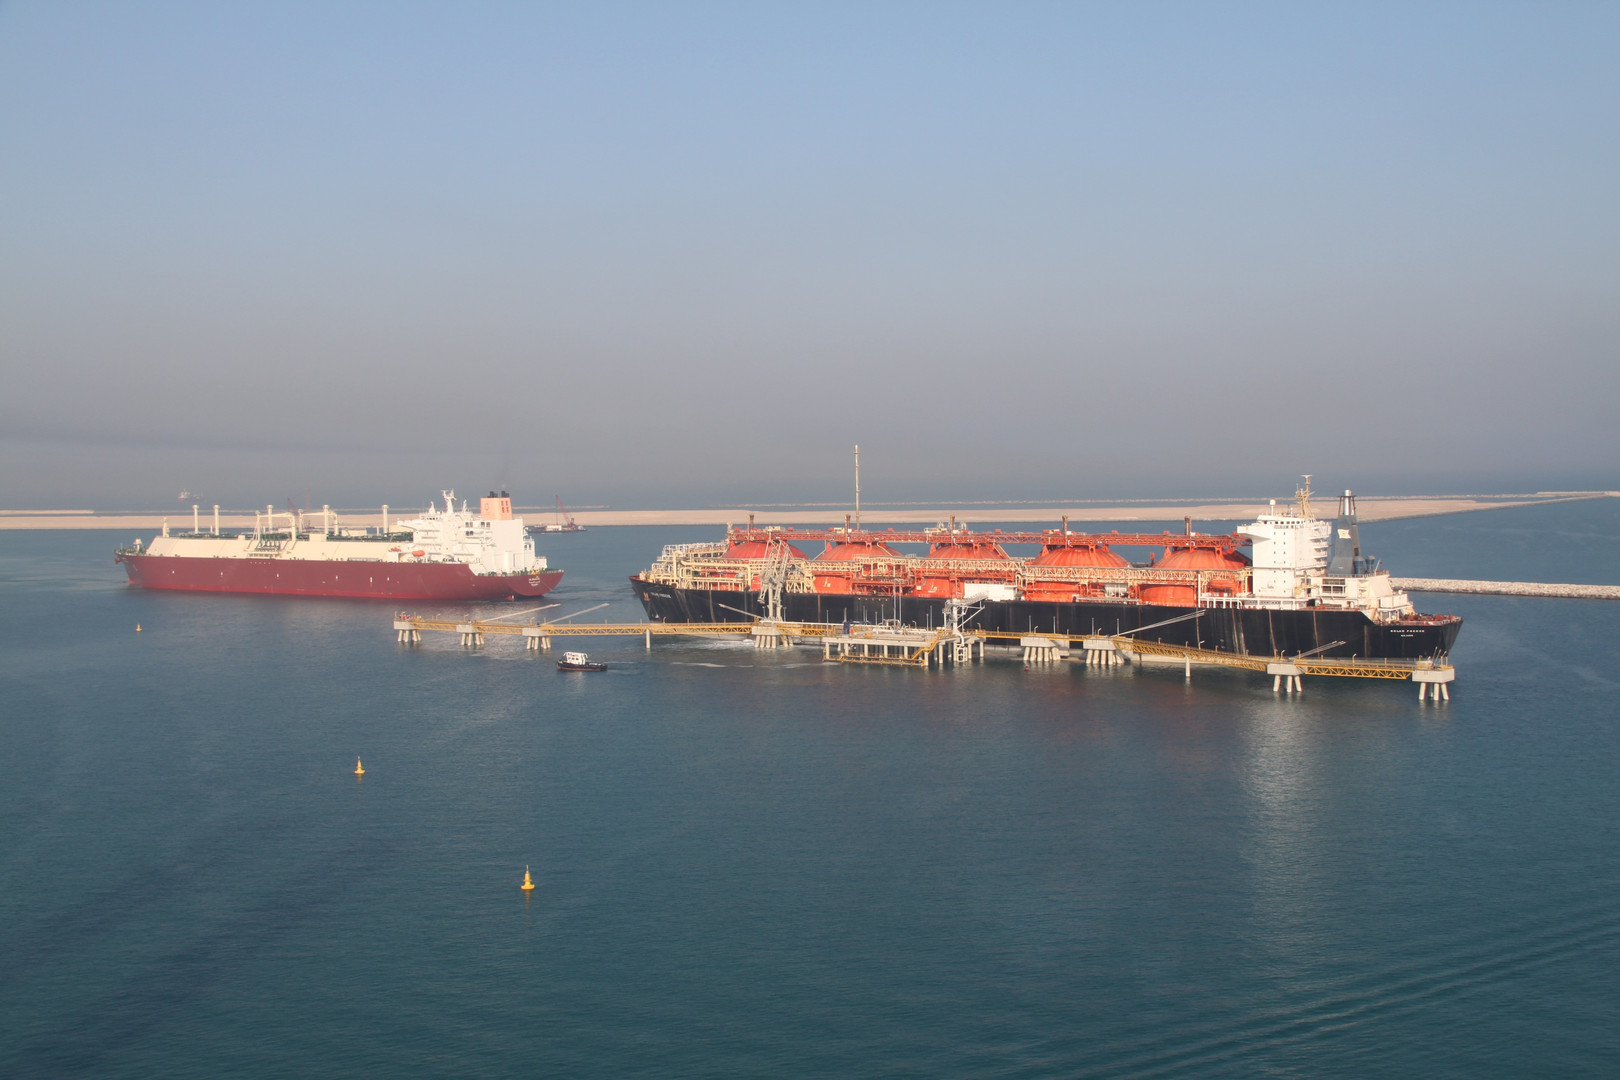 """Qatargas LNG carrier Al Bahiya delivery of commissioning cargo to Regasification vessel Golar Freeze"""